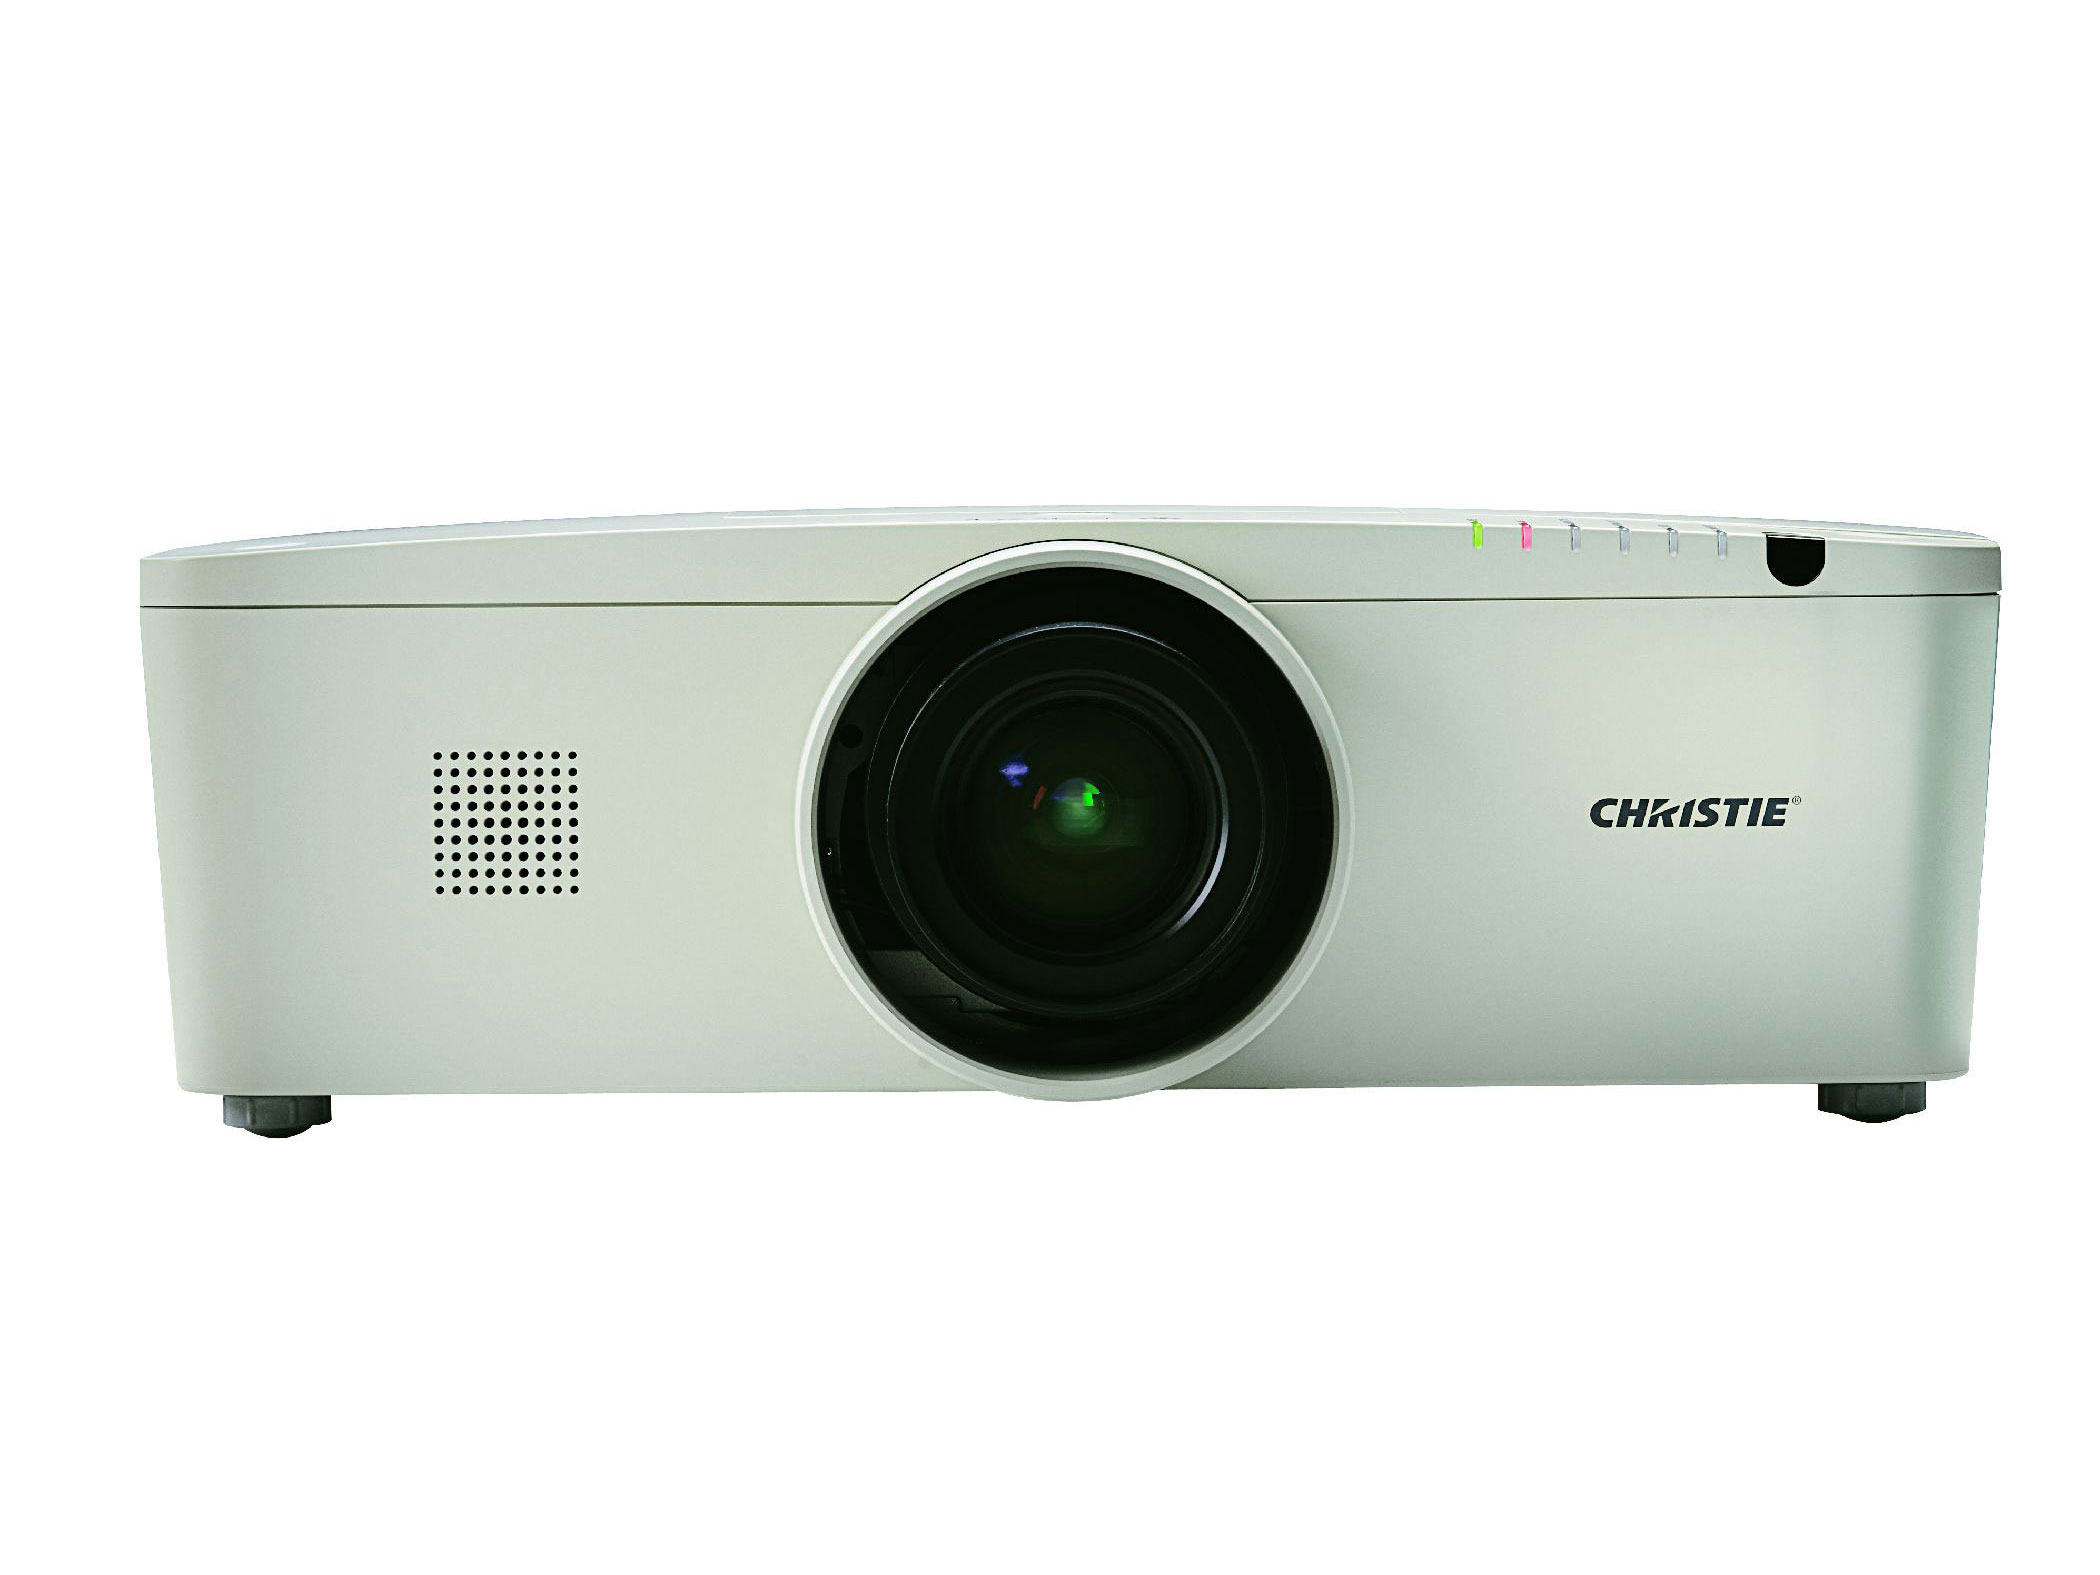 /globalassets/.catalog/products/images/christie-lw555/gallery/christie-lw555-lcd-digital-projector-image10.jpg